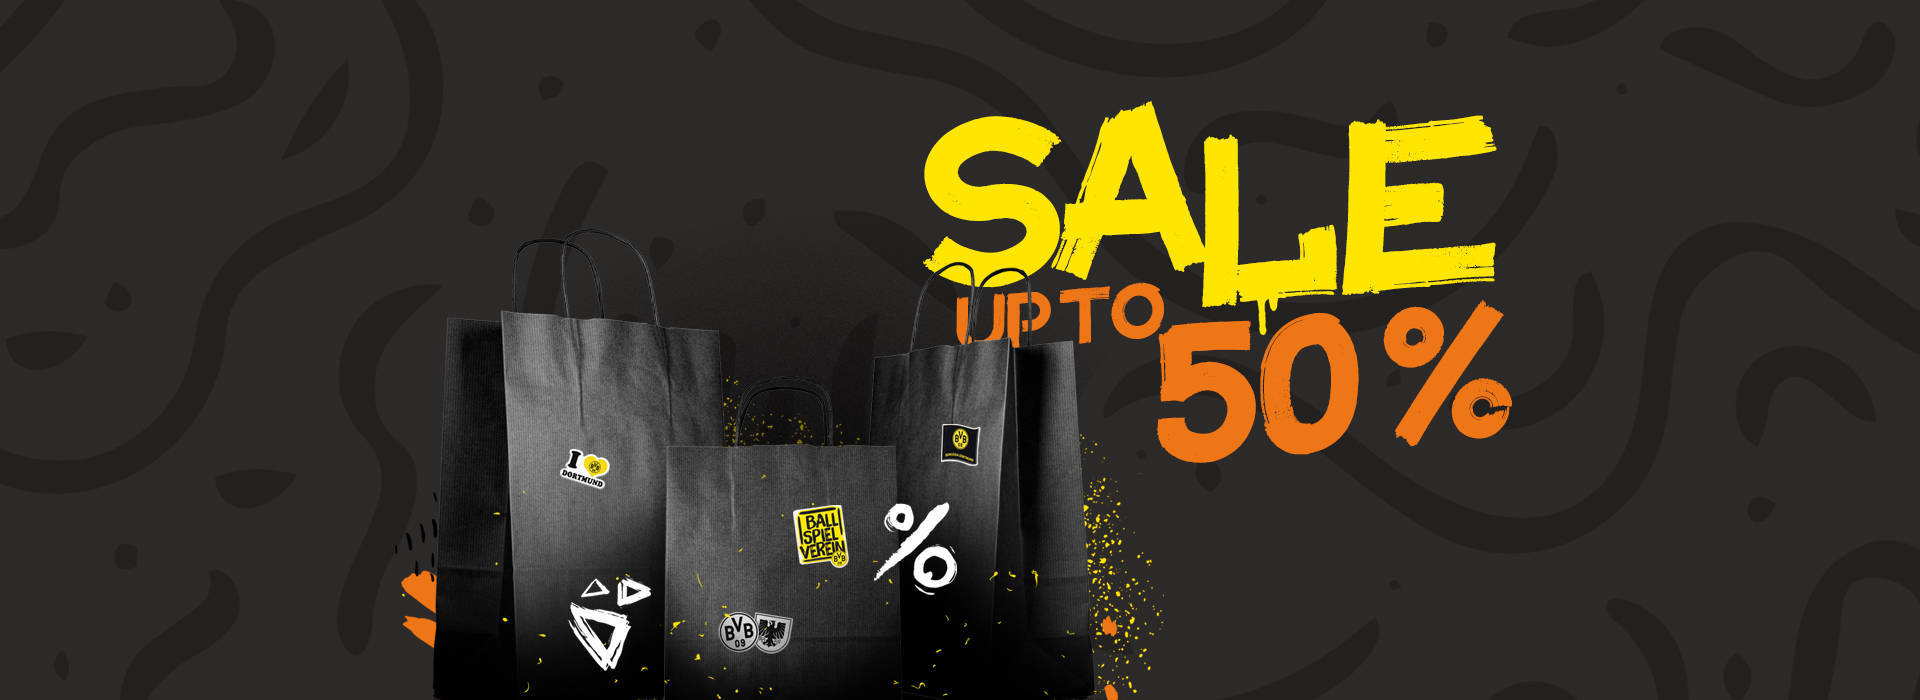 Winter sale at BVB: We need room for something new Our